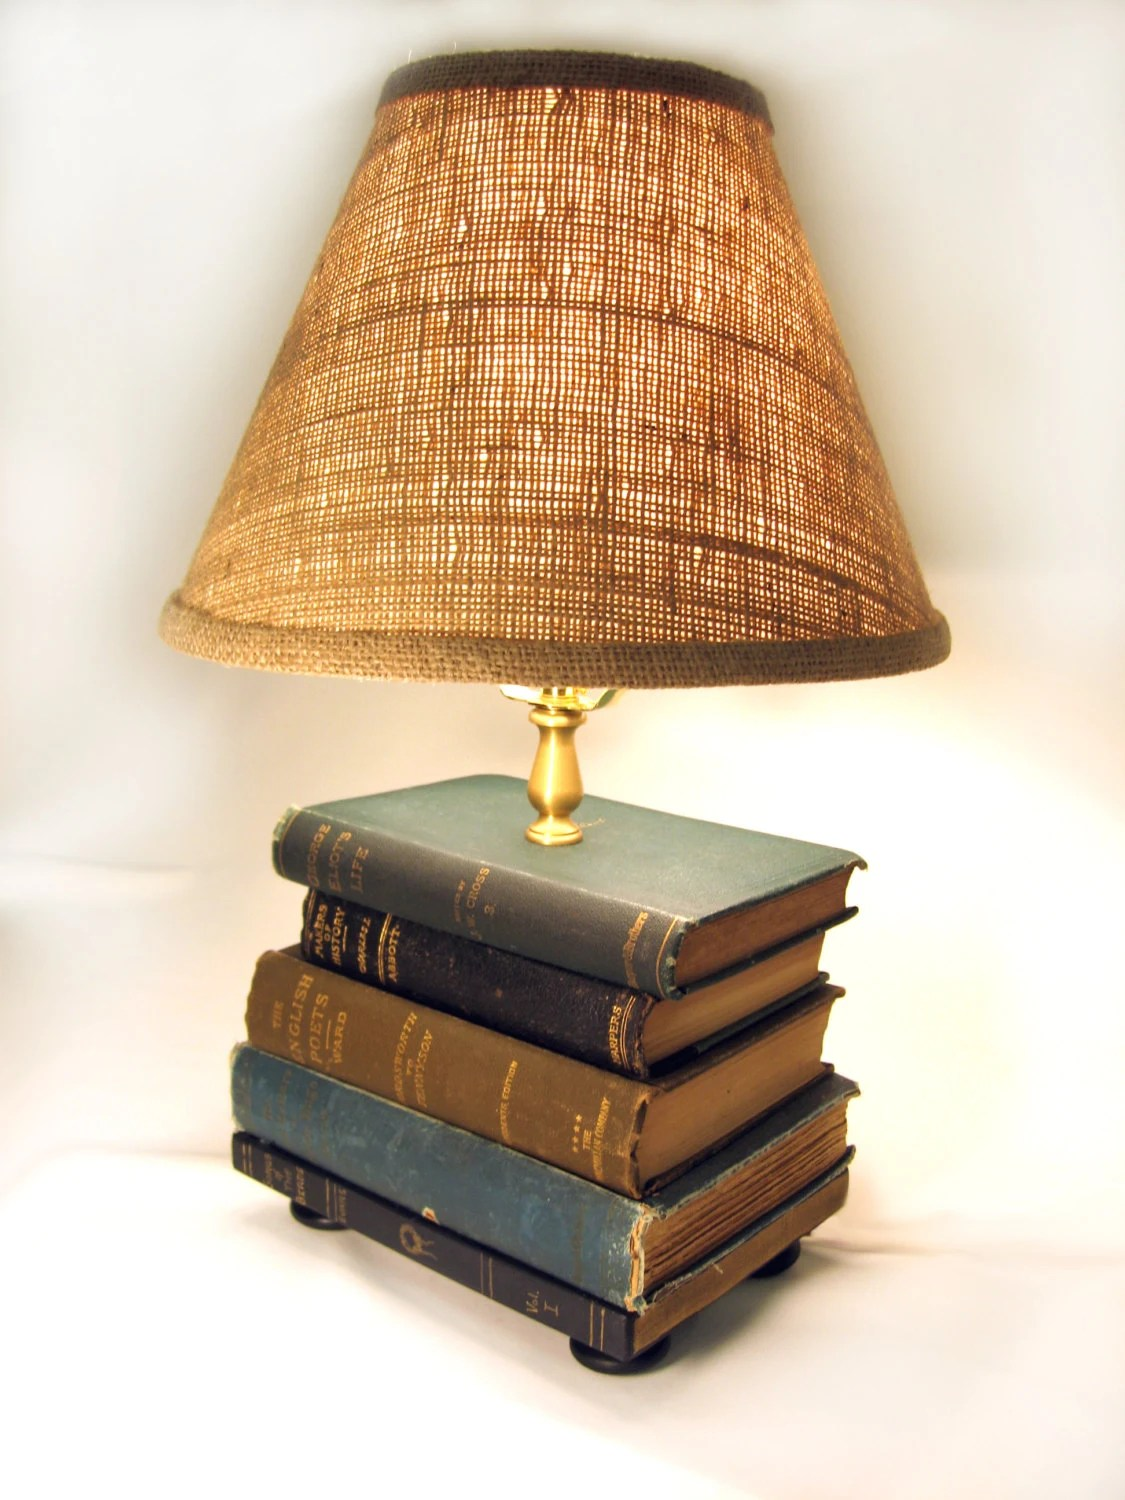 Boog Lamp Book Lamp Antique Upcycled Books Burlap Lamp Shade